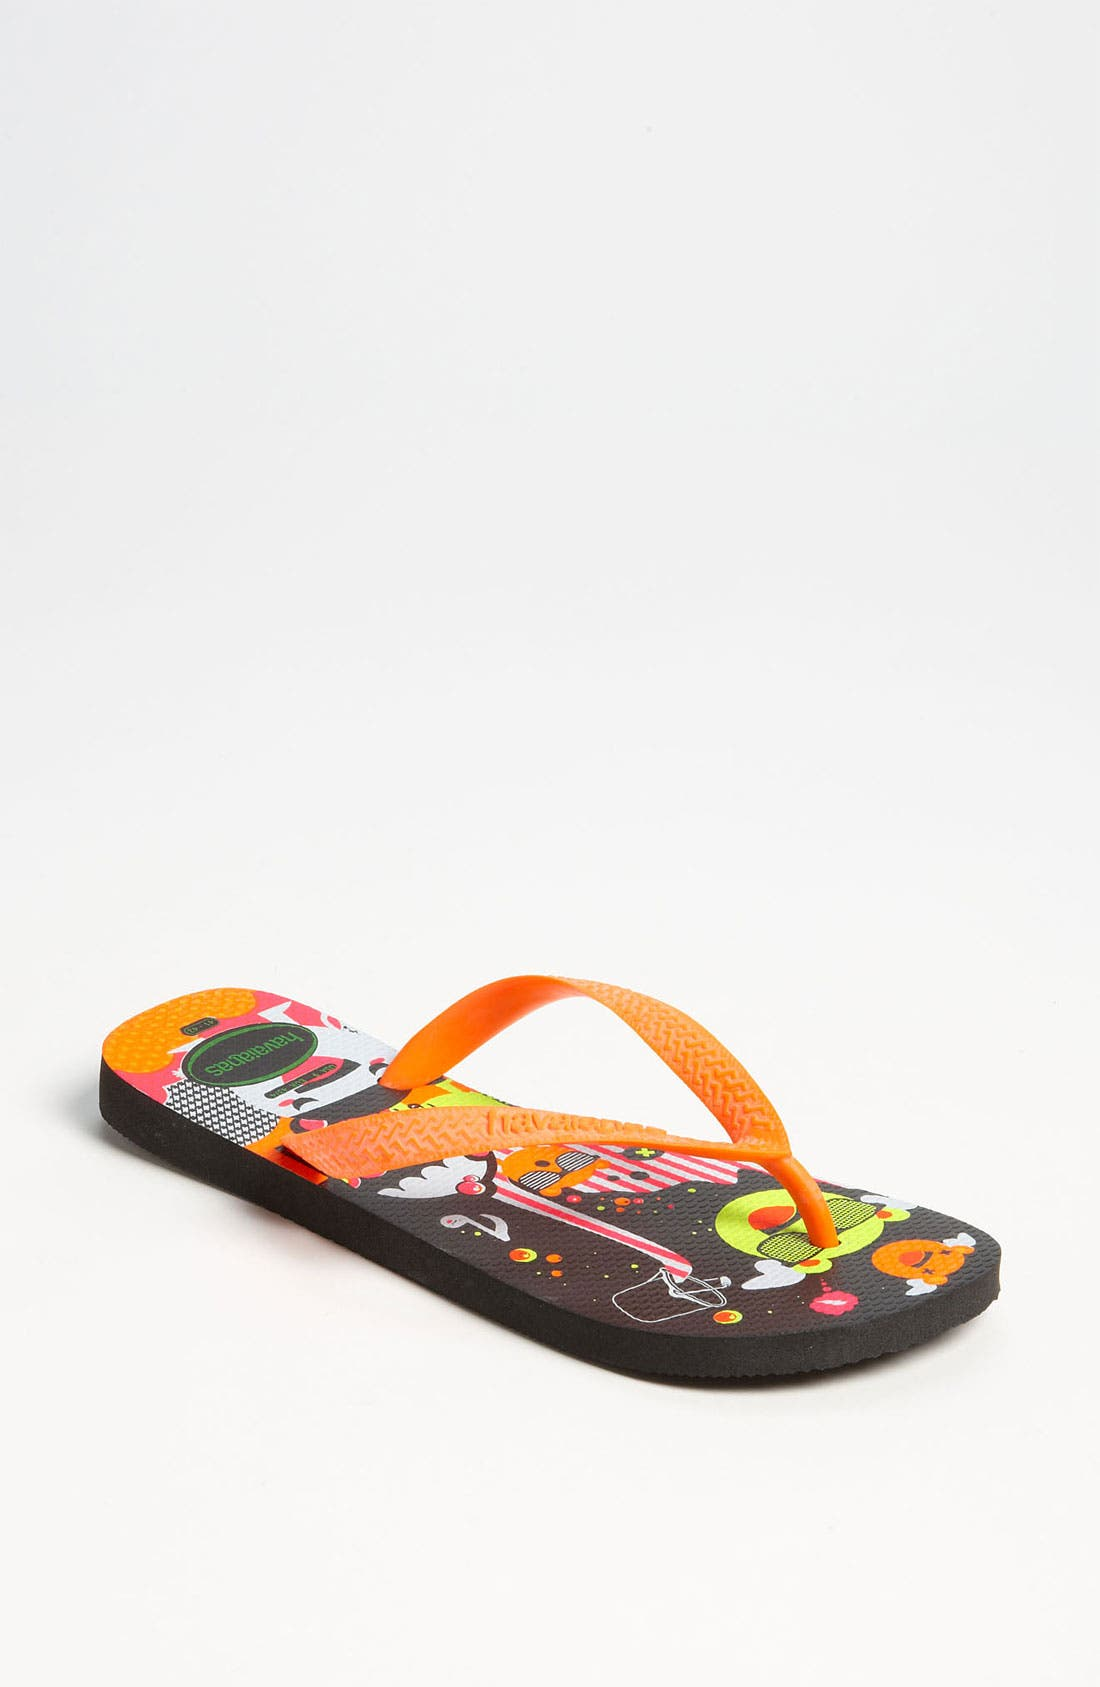 Alternate Image 1 Selected - Havaianas 'Fun' Flip Flop (Women)